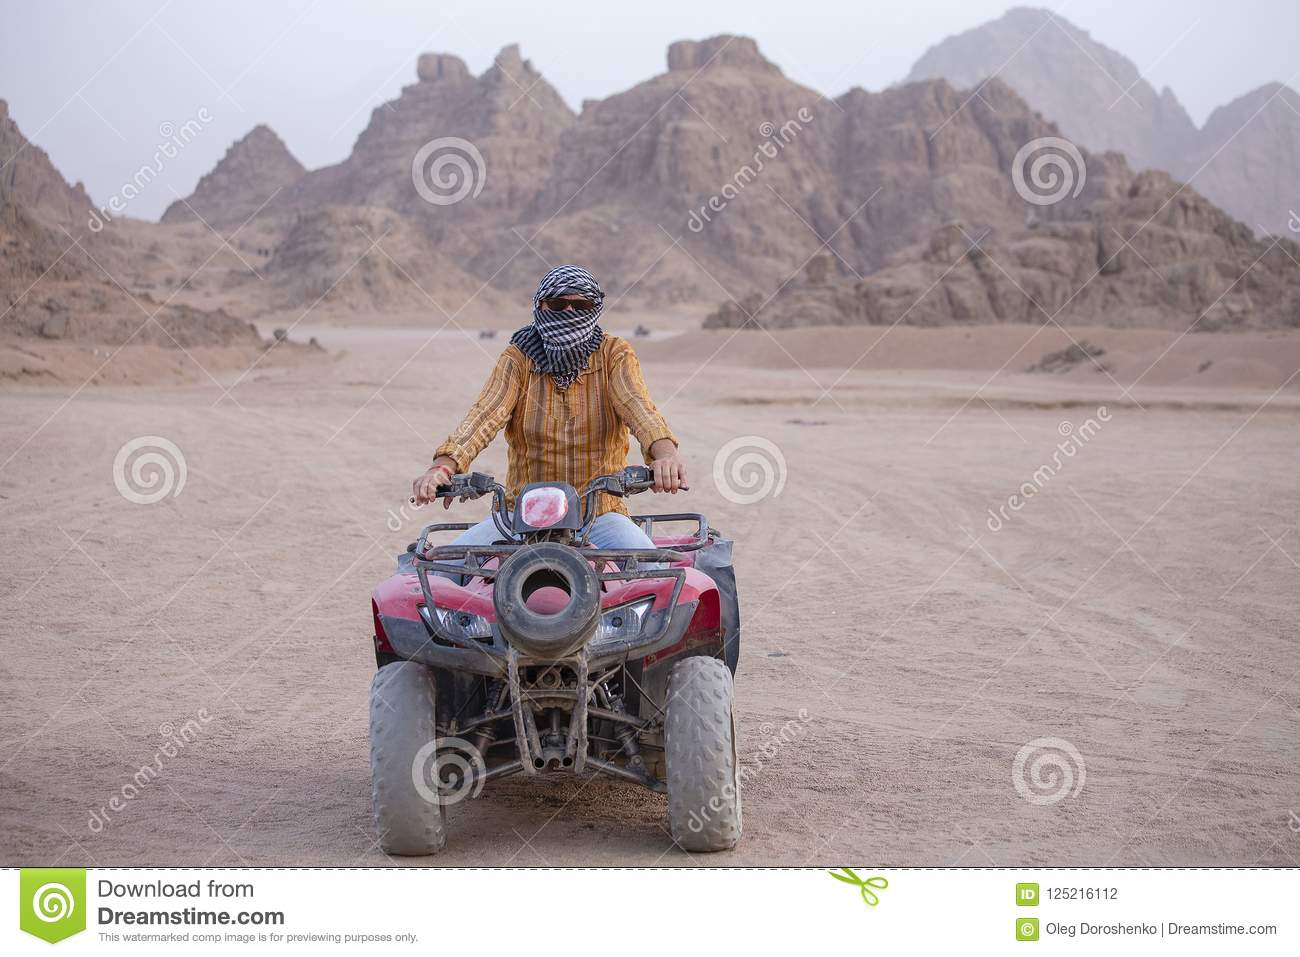 Portrait of a man on an ATV. Quad bikes safari in desert near Sharm El Sheikh, Egypt